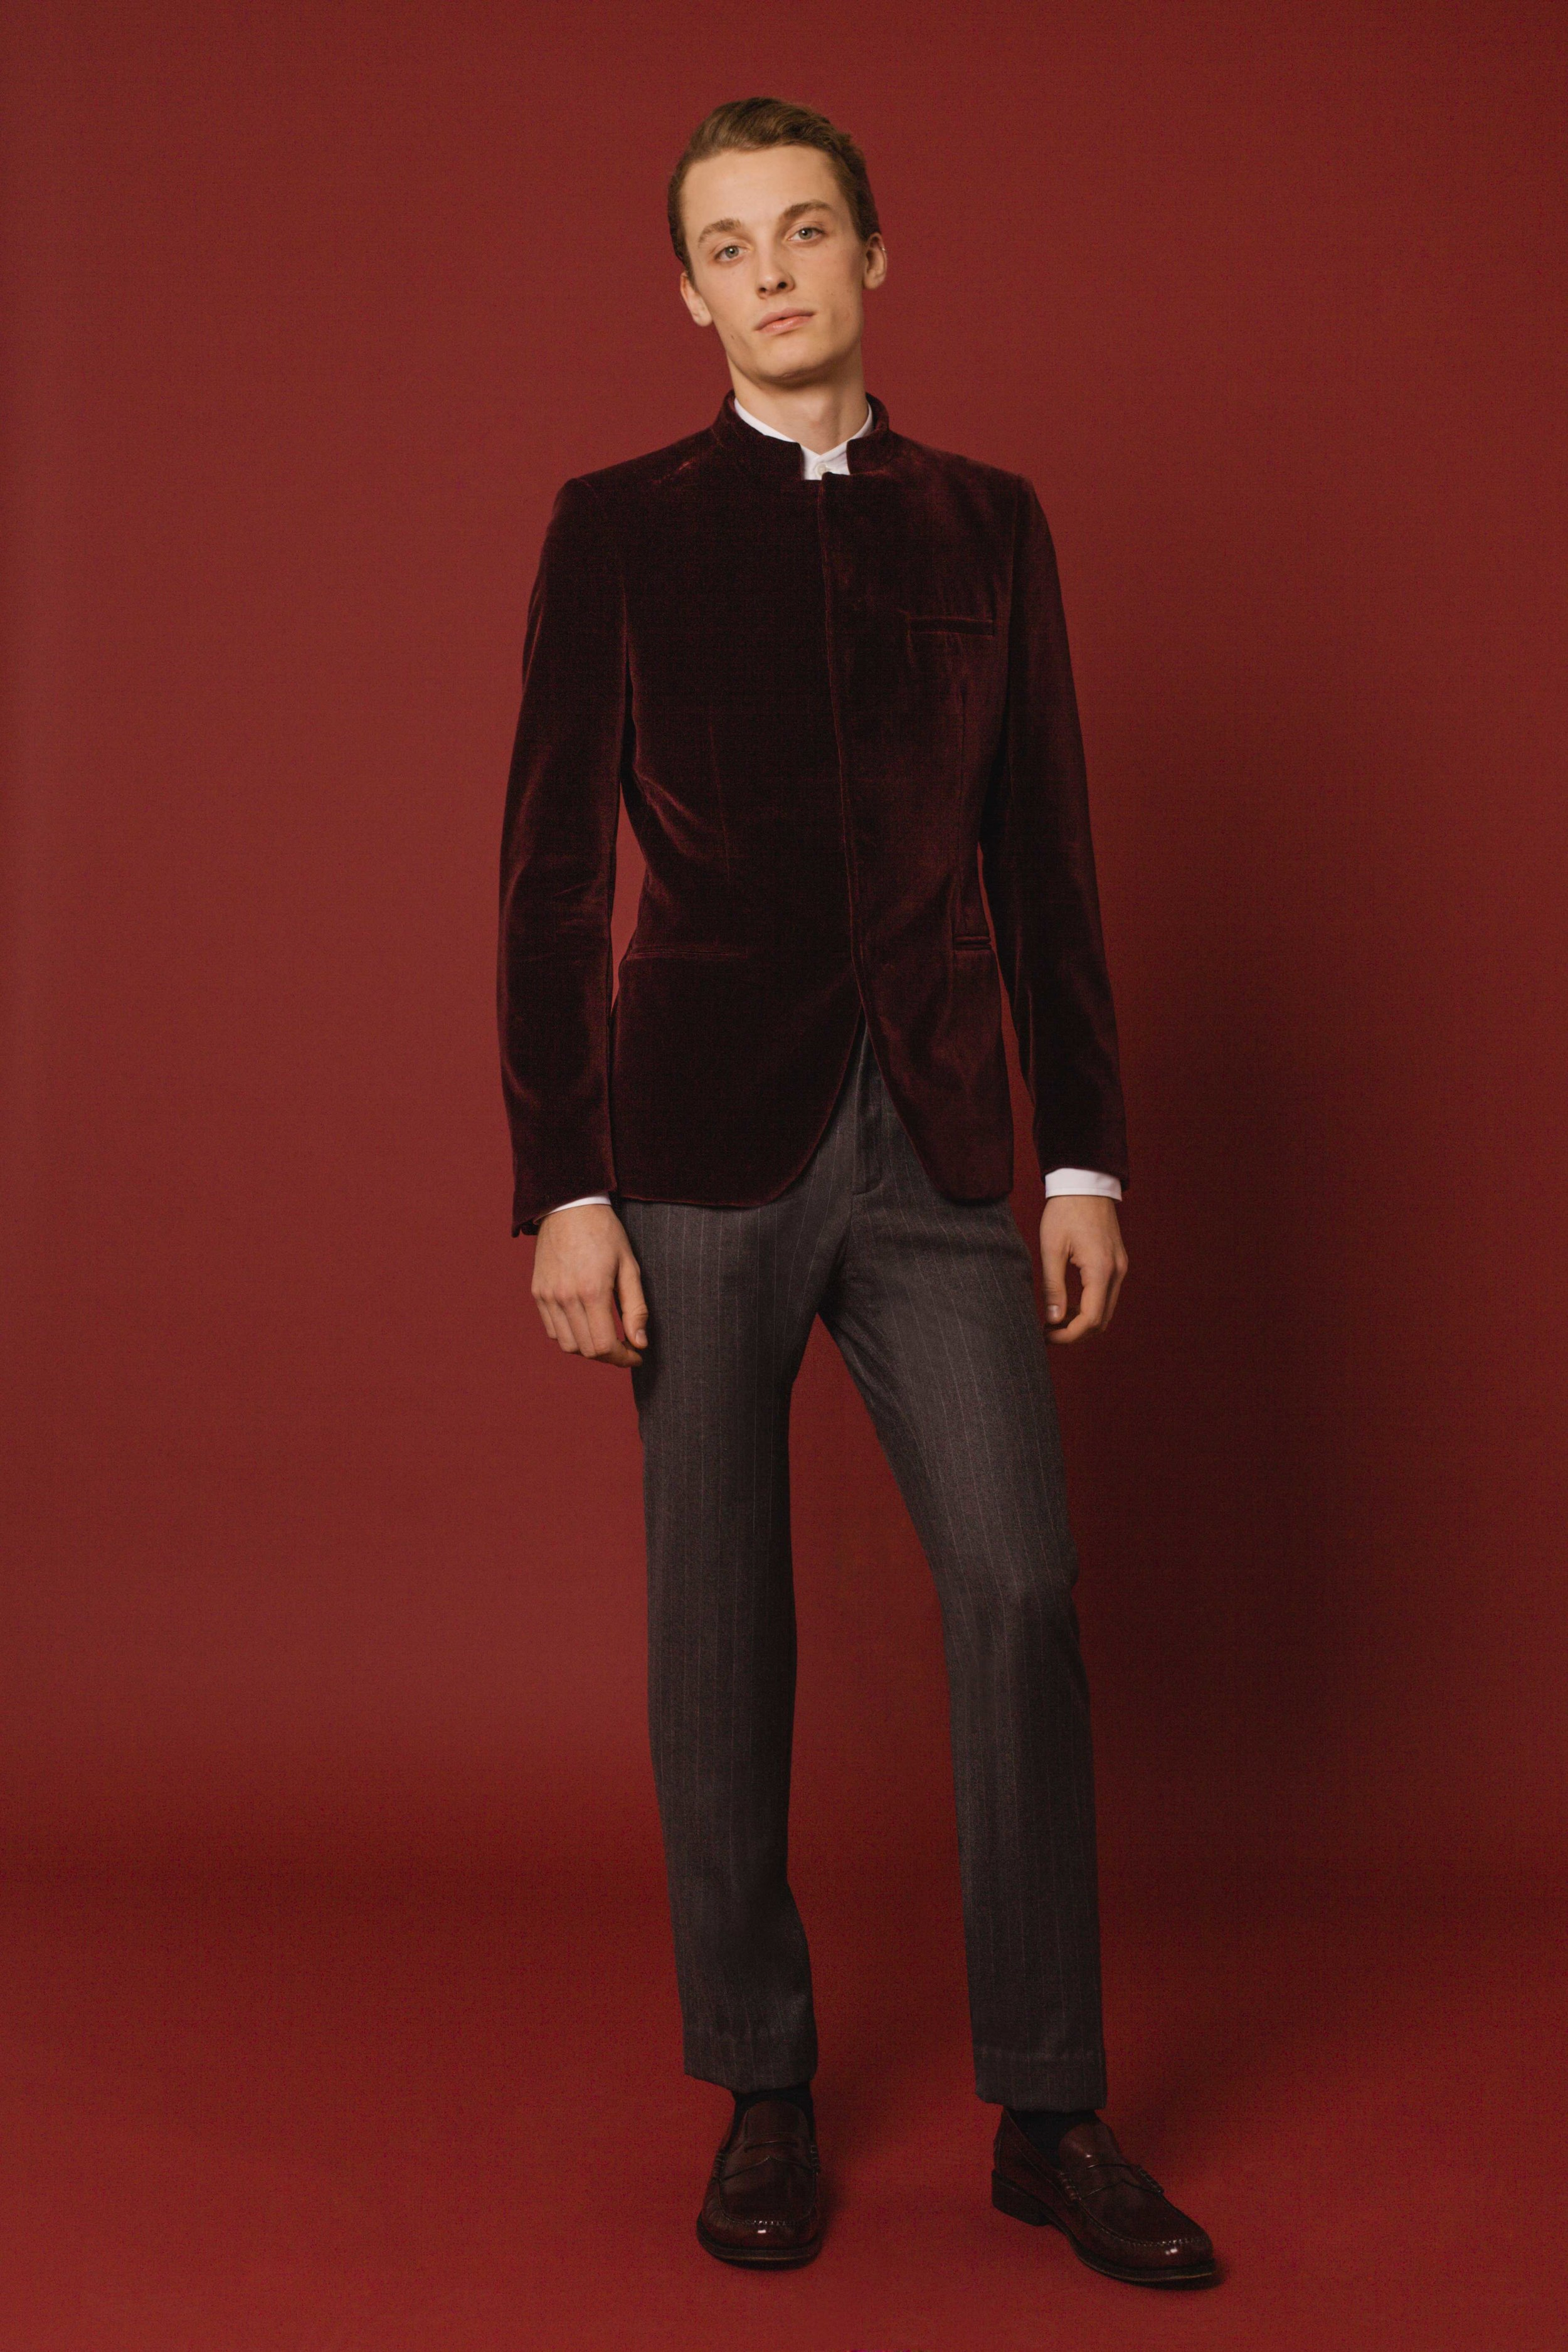 Bombay jacket burgundy velvet Slim fit trousers grey pinstripe wool Made in England  Classic shirt white Made in Italy